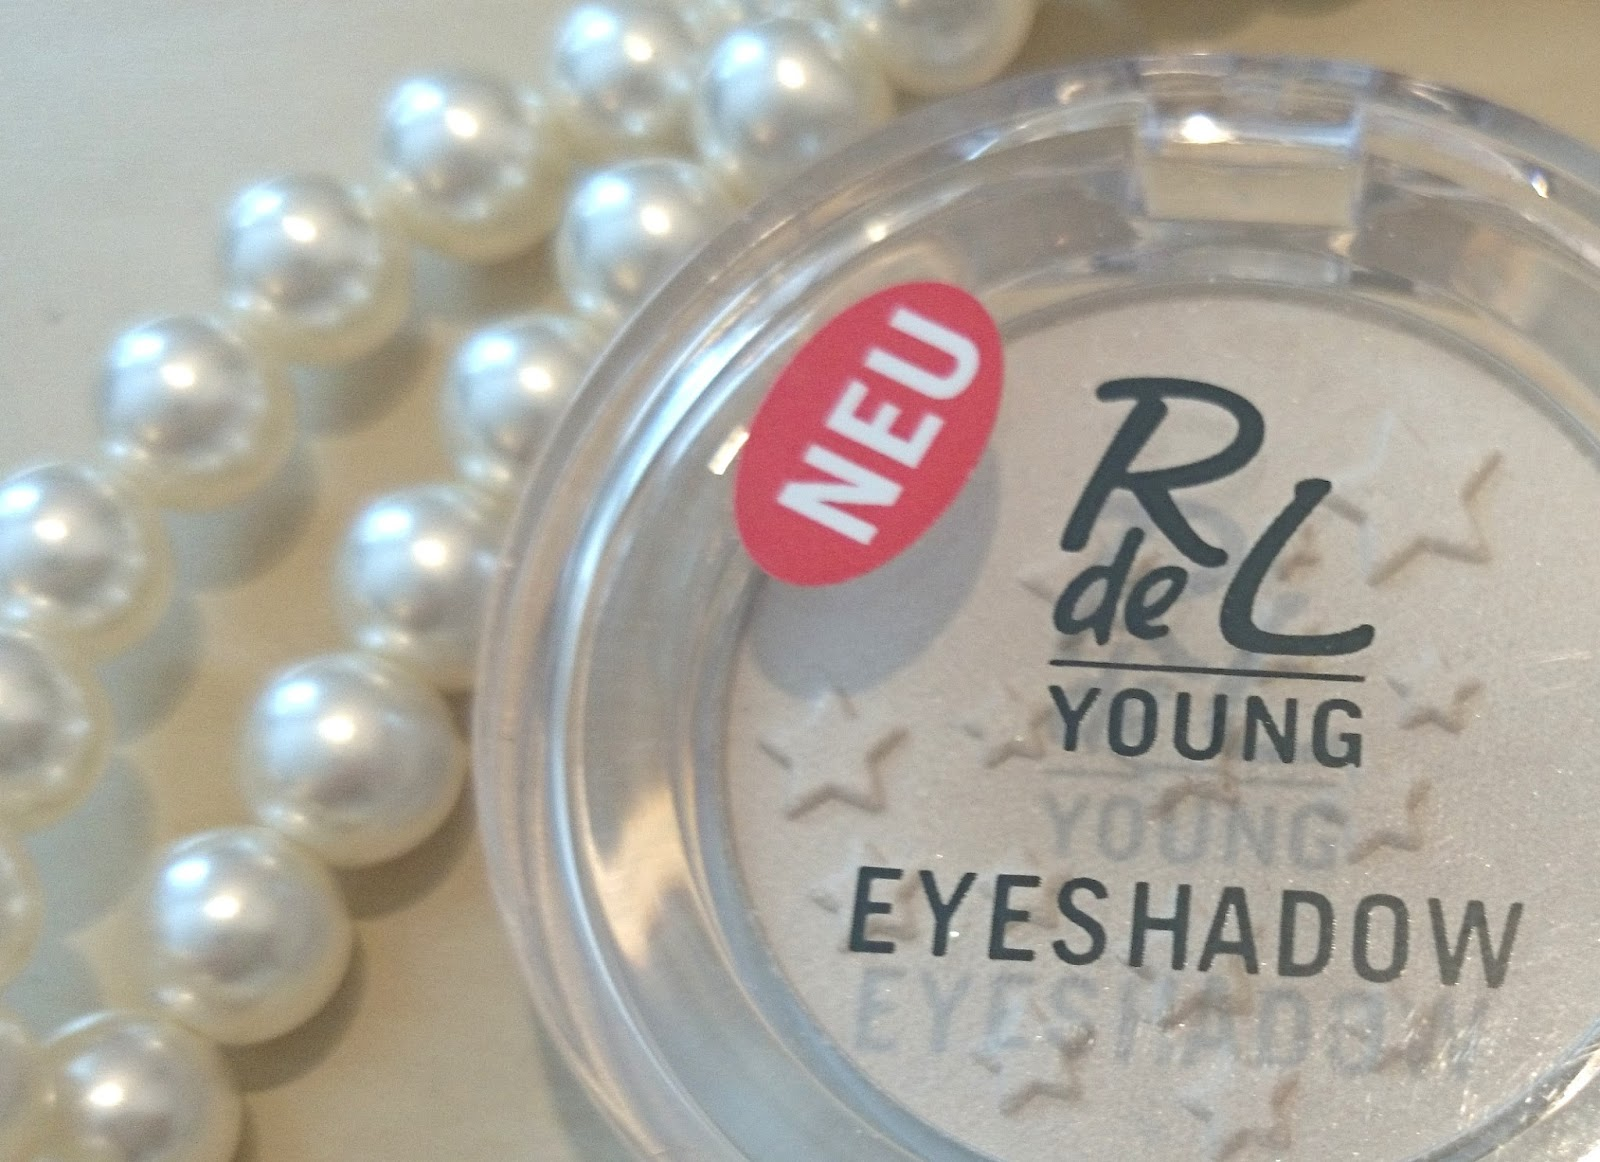 Rival de Loop Young Eyeshadow 03 Golden Glam